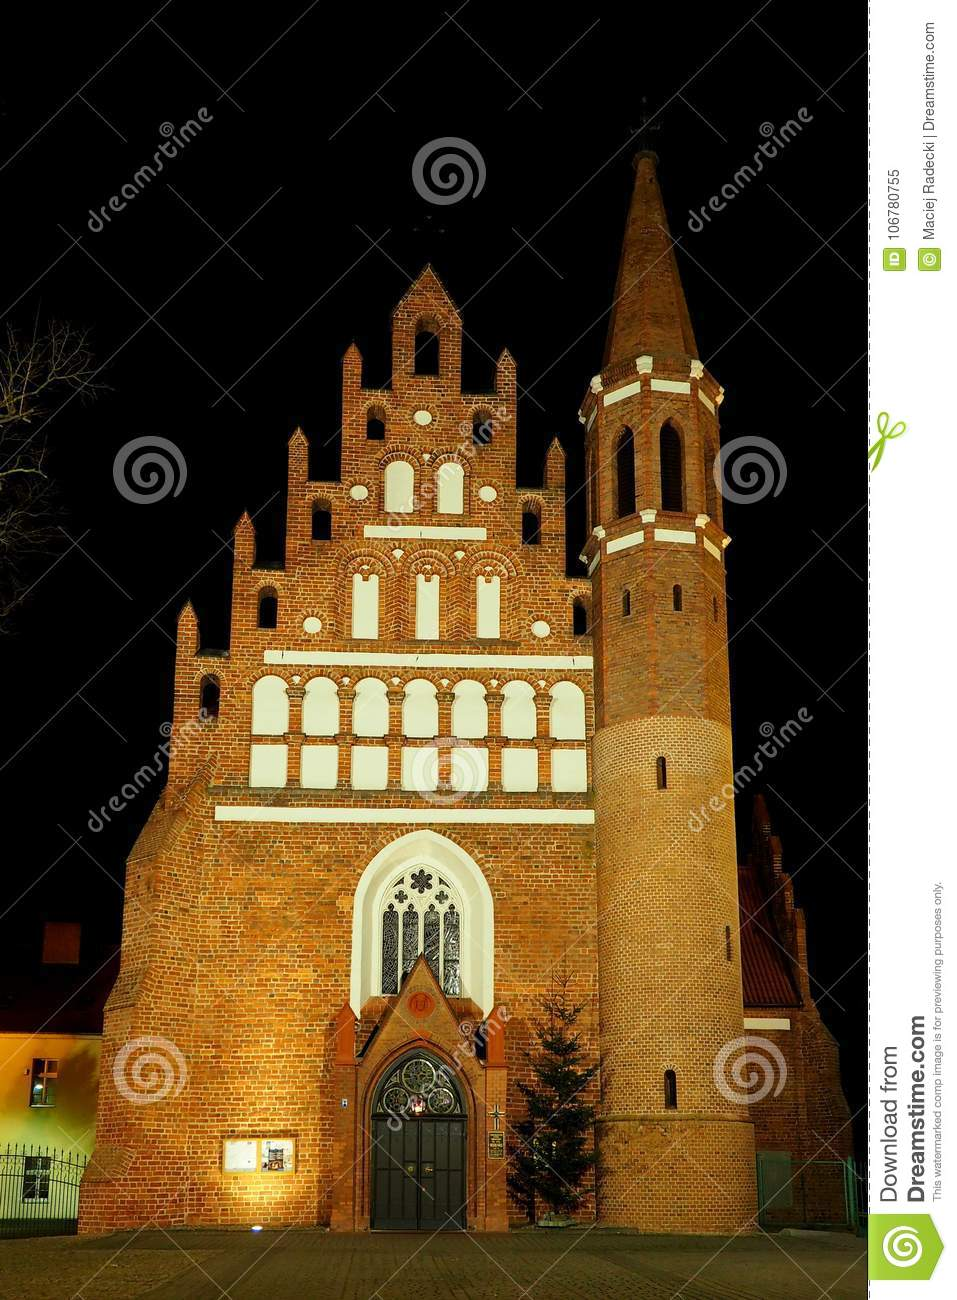 Gothic Red Brick Church By Night Stock Image